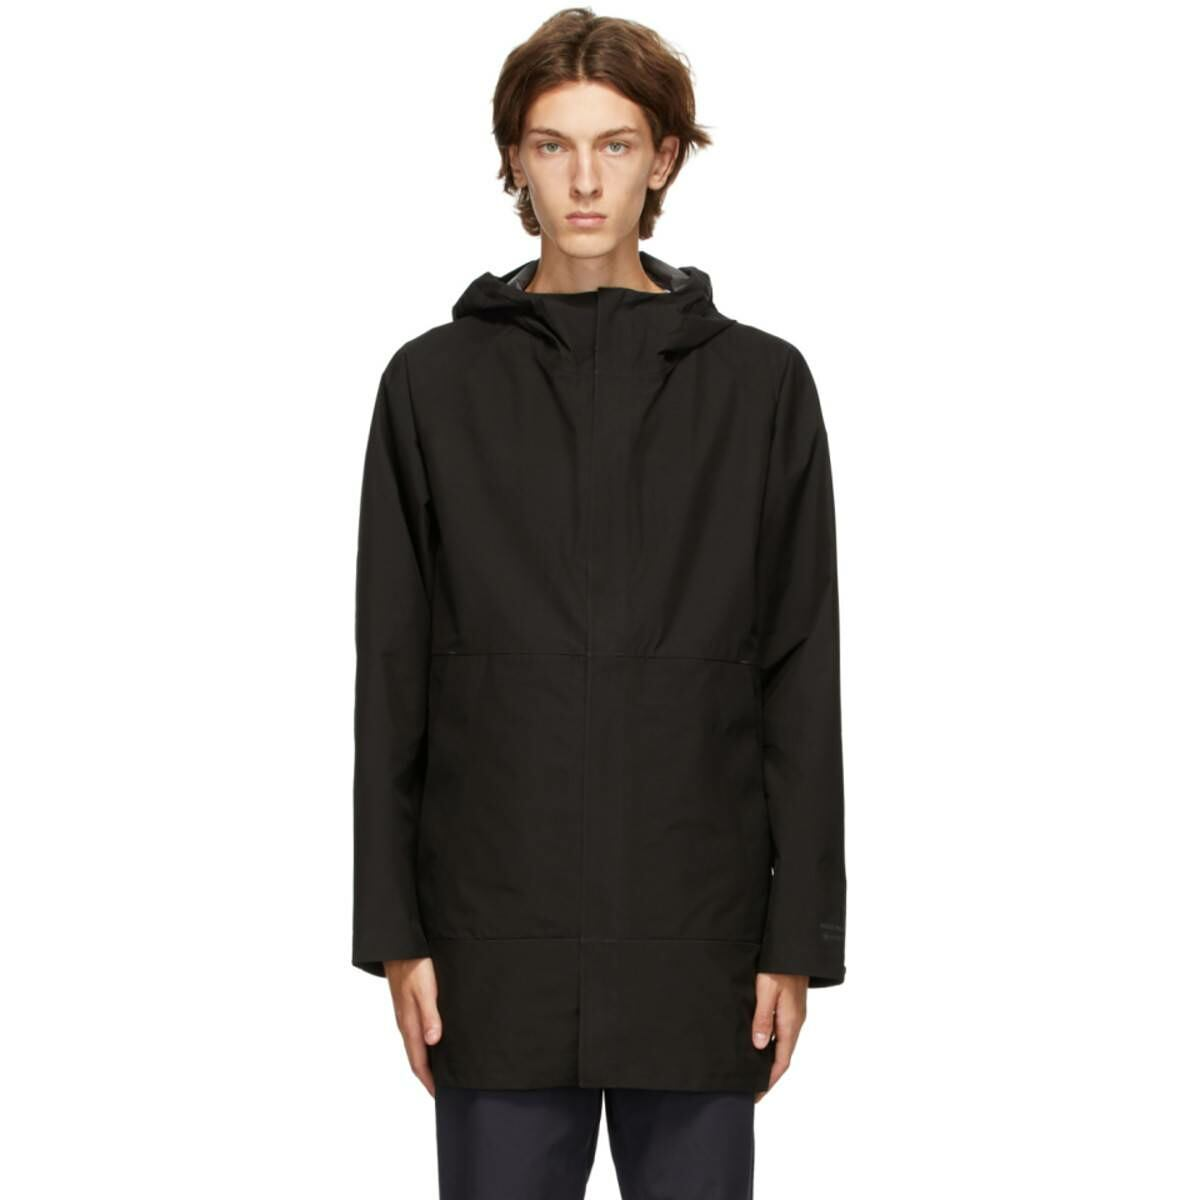 Norse Projects Black Gore-Tex® Bergen Coat Ssense USA MEN Men FASHION Mens COATS